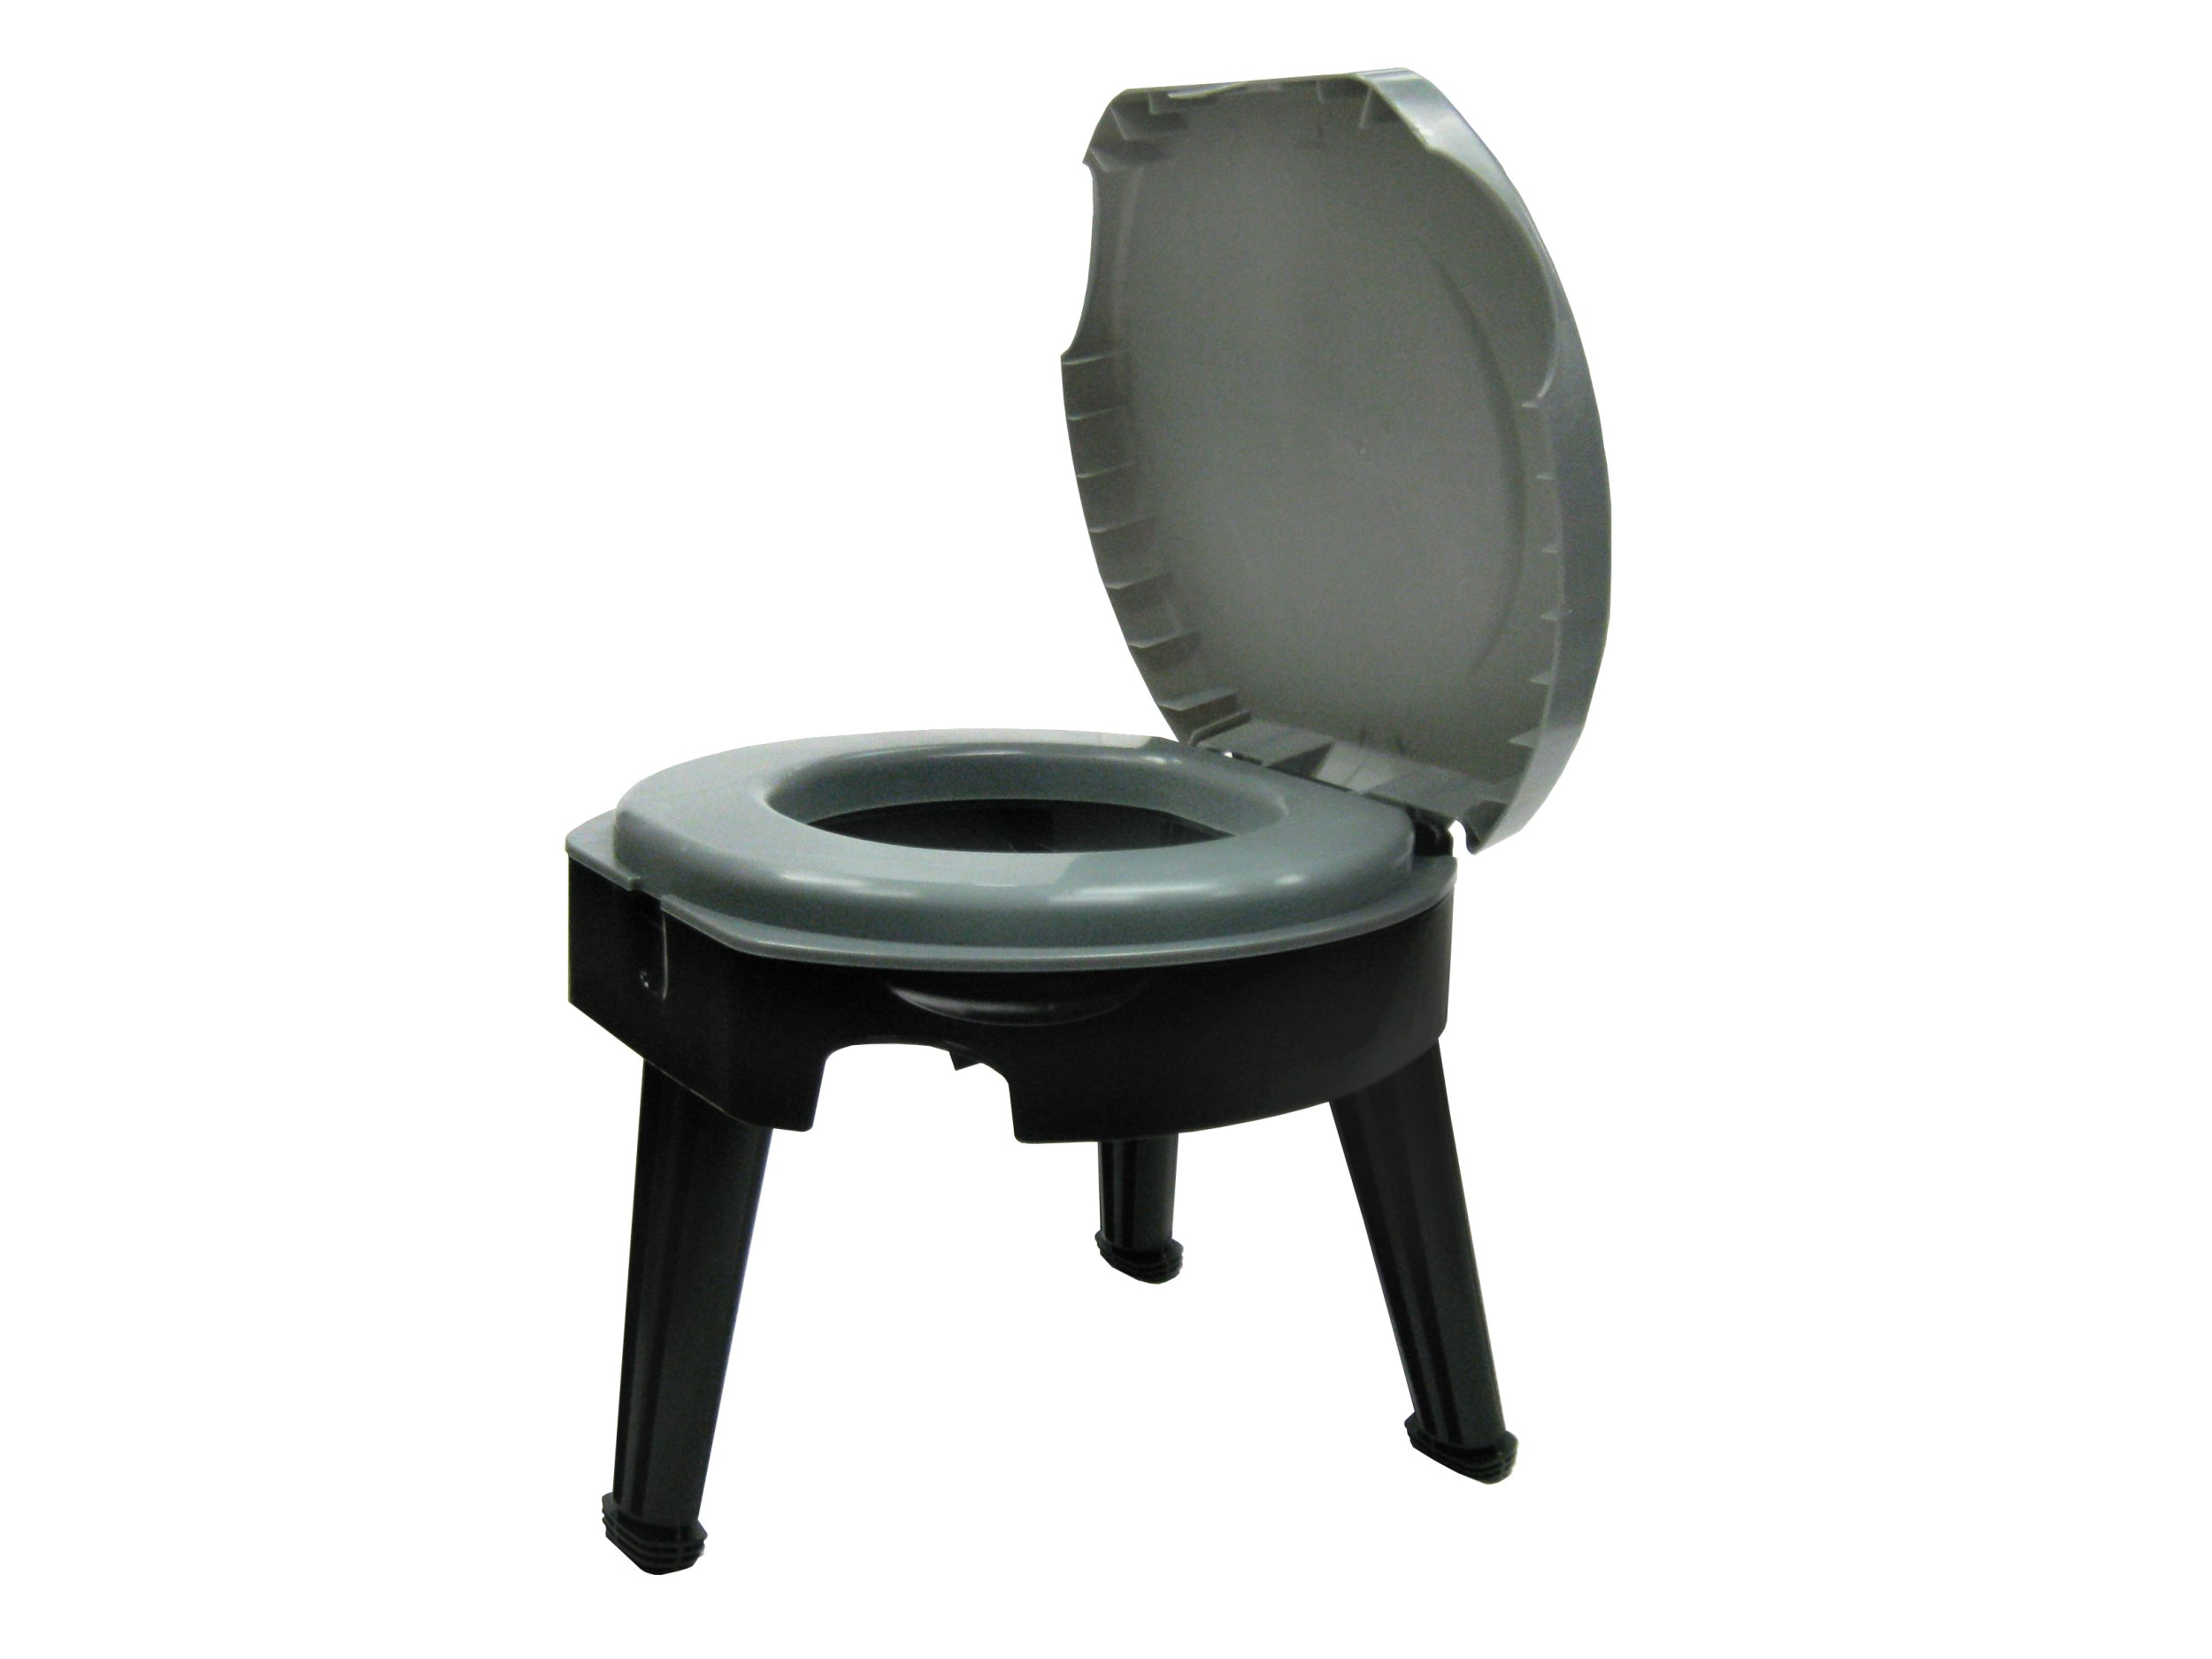 "Reliance Products Fold-to-Go Collapsible Portable Toilet, 9824-21W, Gray/Black, 14.5""x14.5""x14.5"""